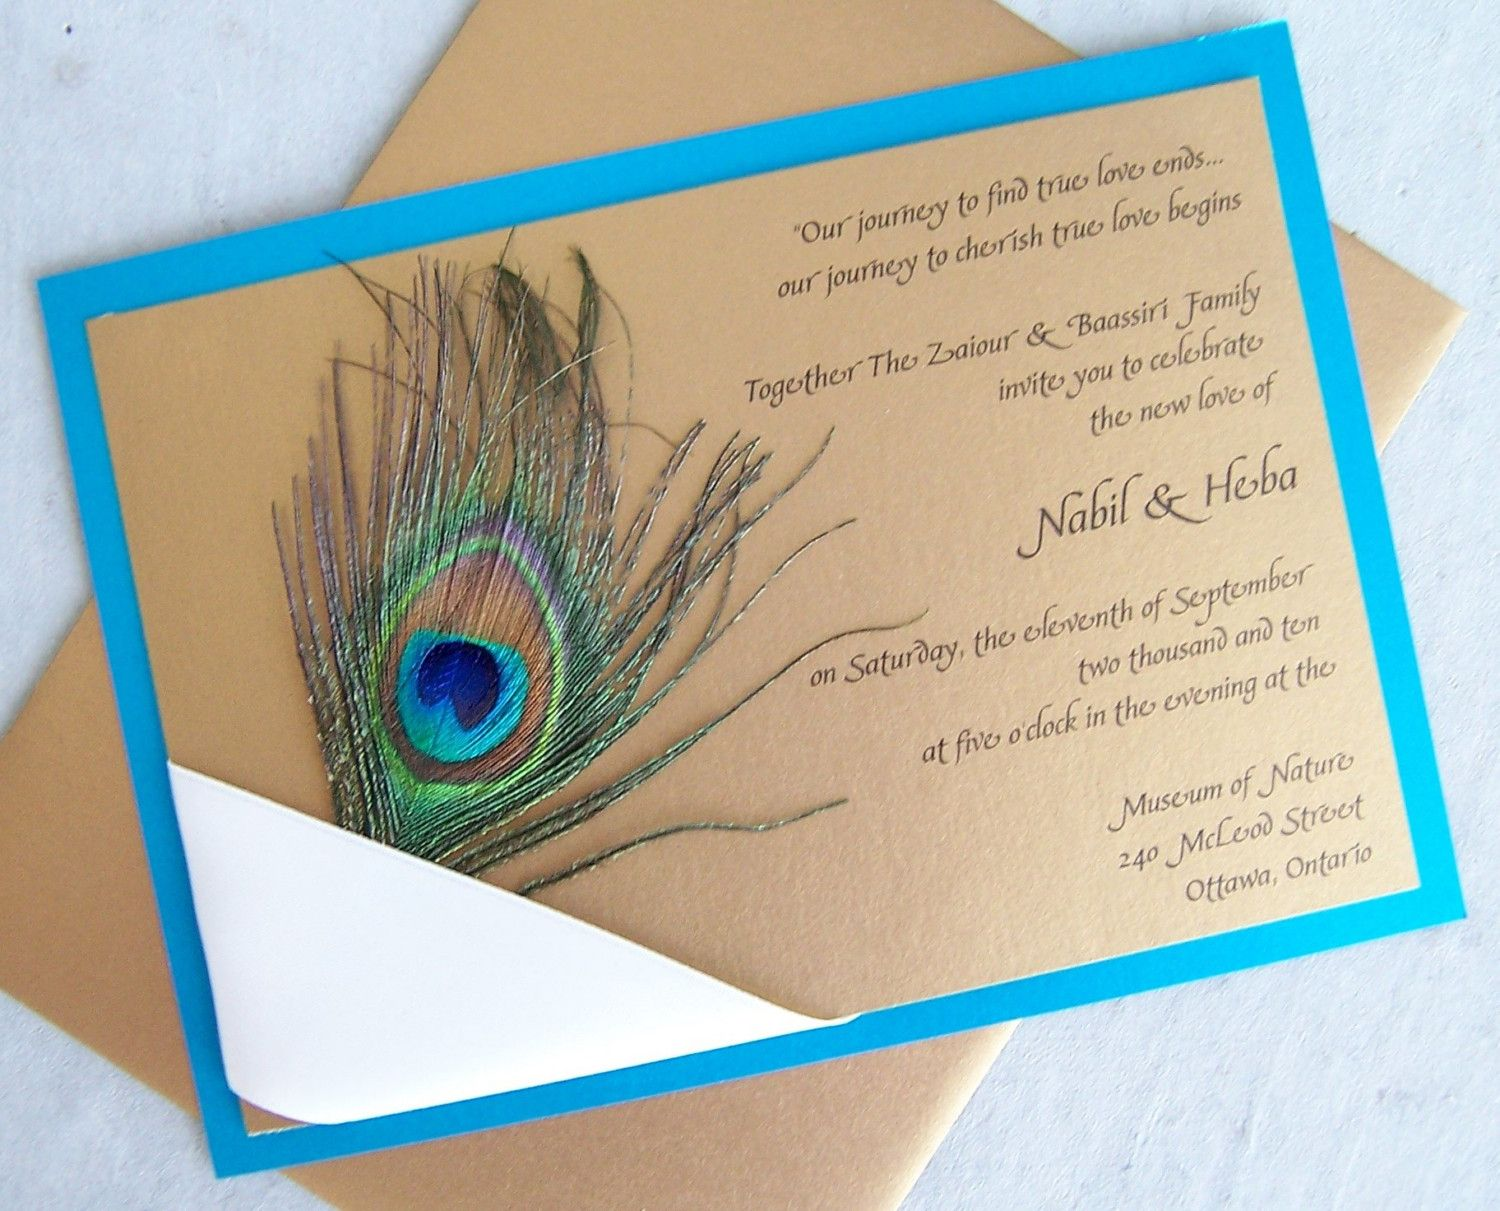 Best 25 Peacock wedding invitations ideas on Pinterest Peacock